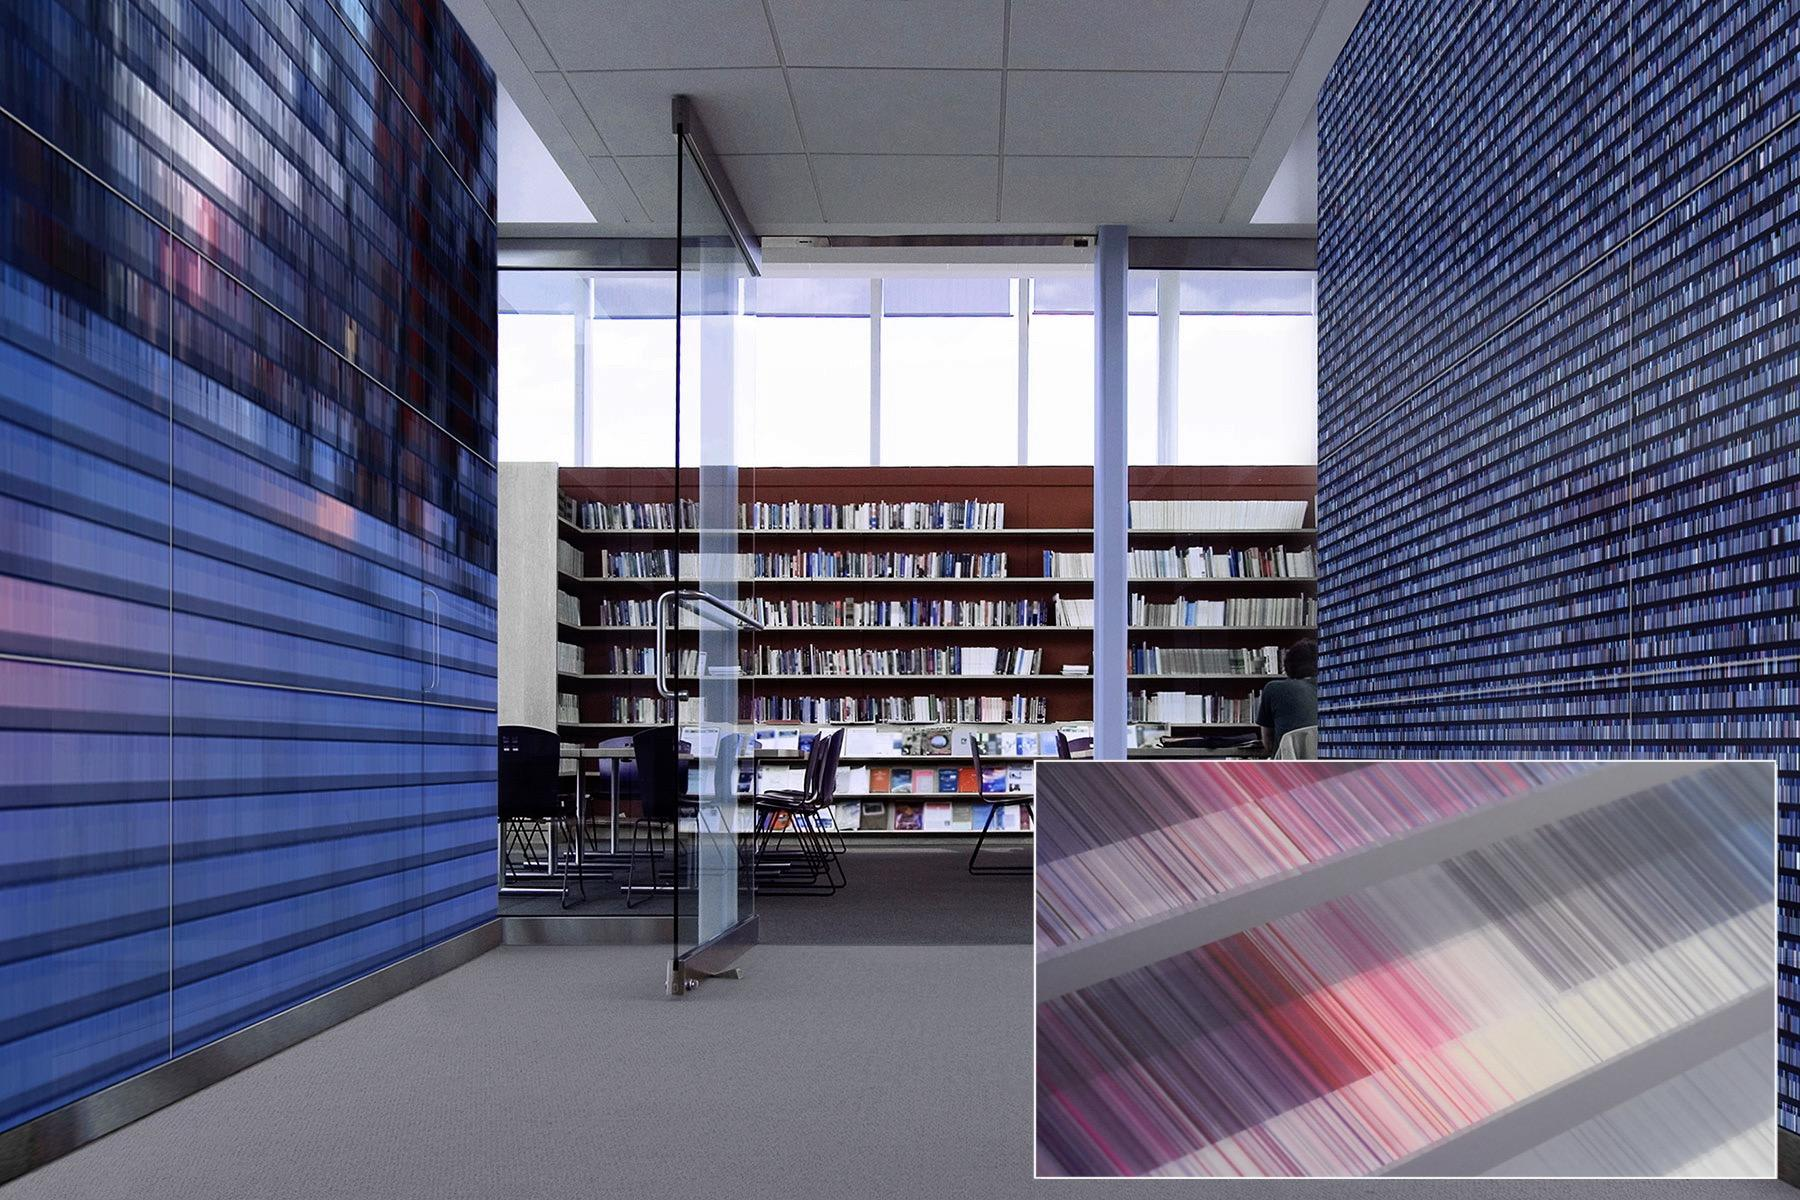 Partition walls in public library